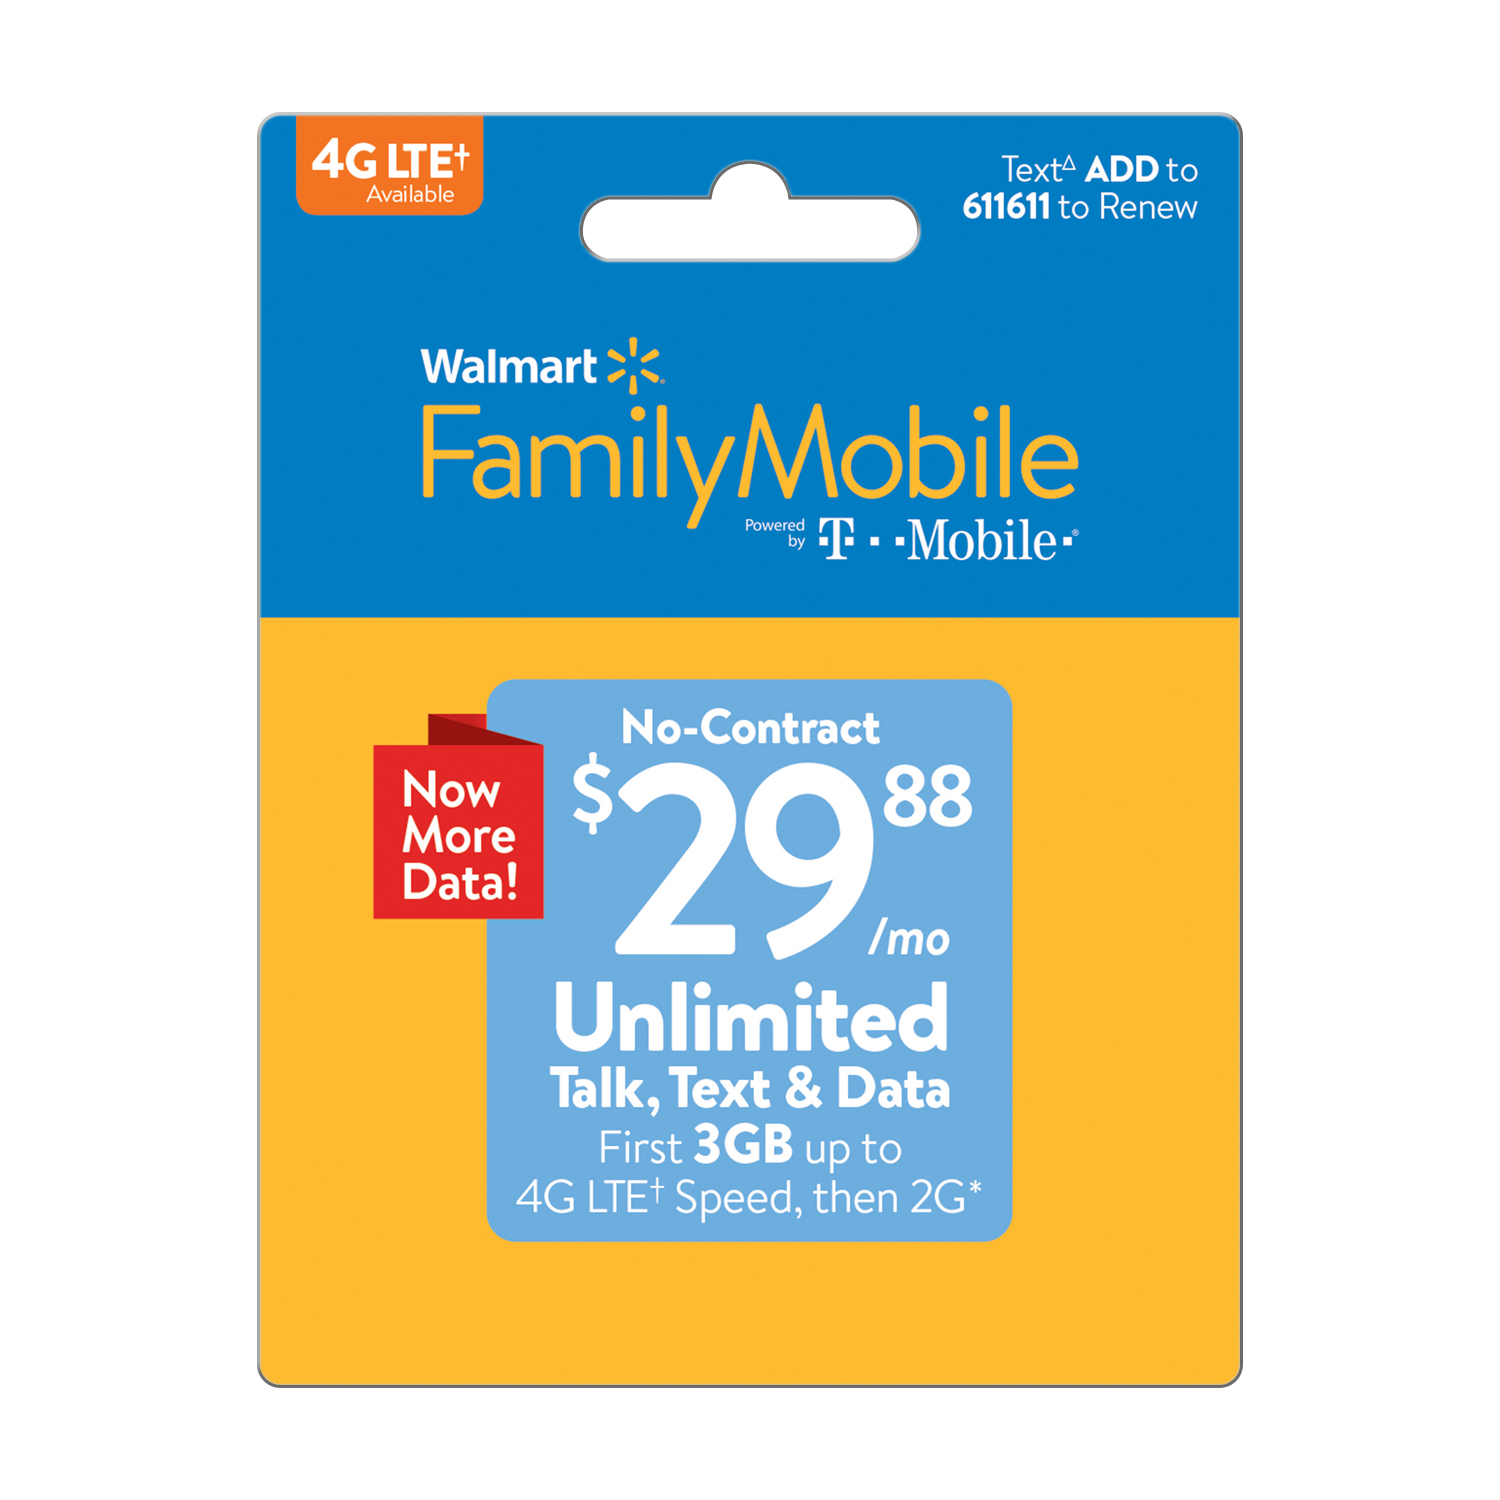 Walmart Family Mobile $29.88 Unlimited Monthly Plan (3GB at high speed, then 2G*) (Email Delivery)